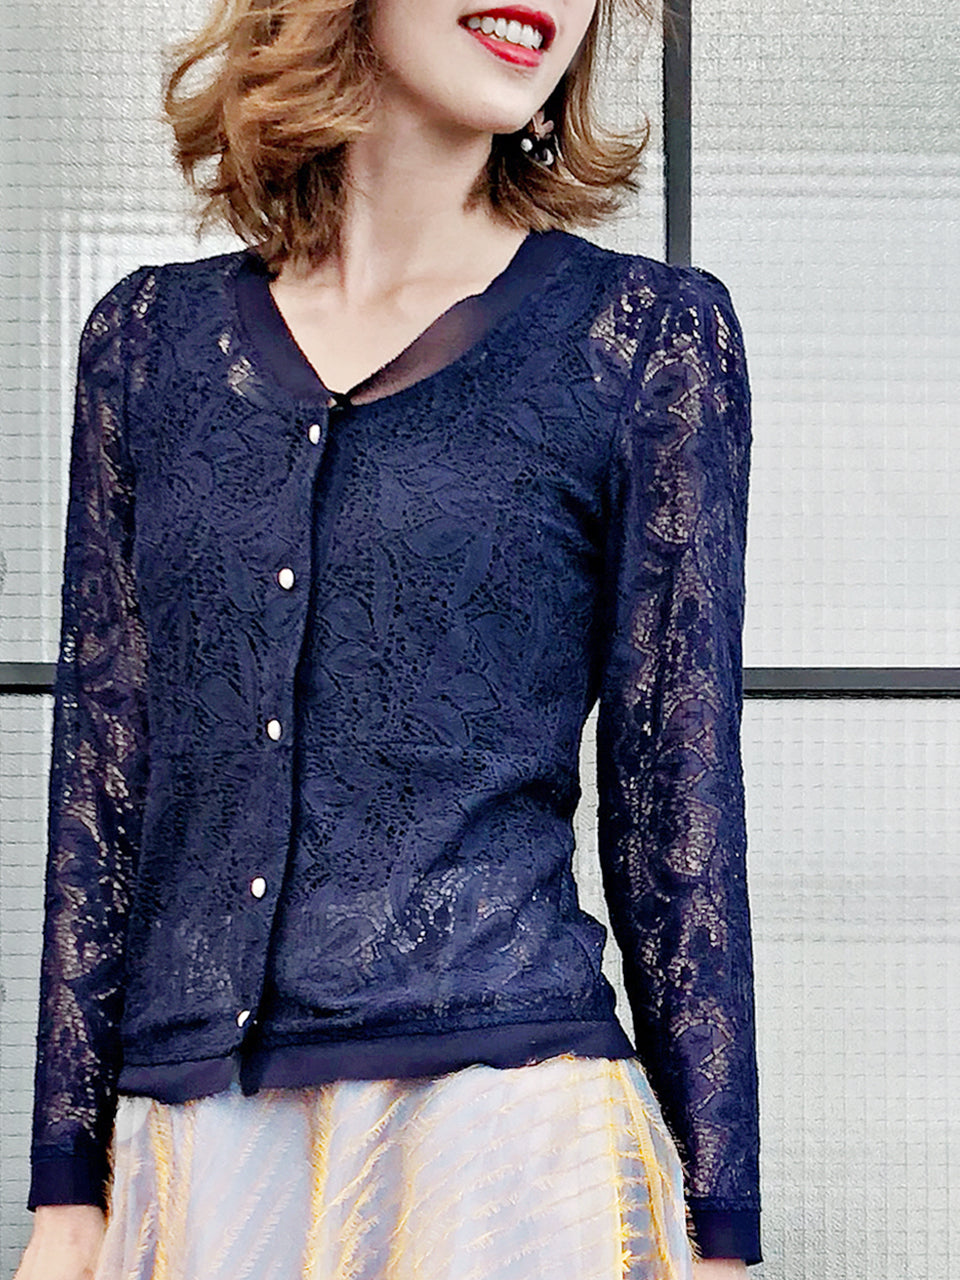 Last Chance! Chiffon Trim Floral Sheer Lace Jacket